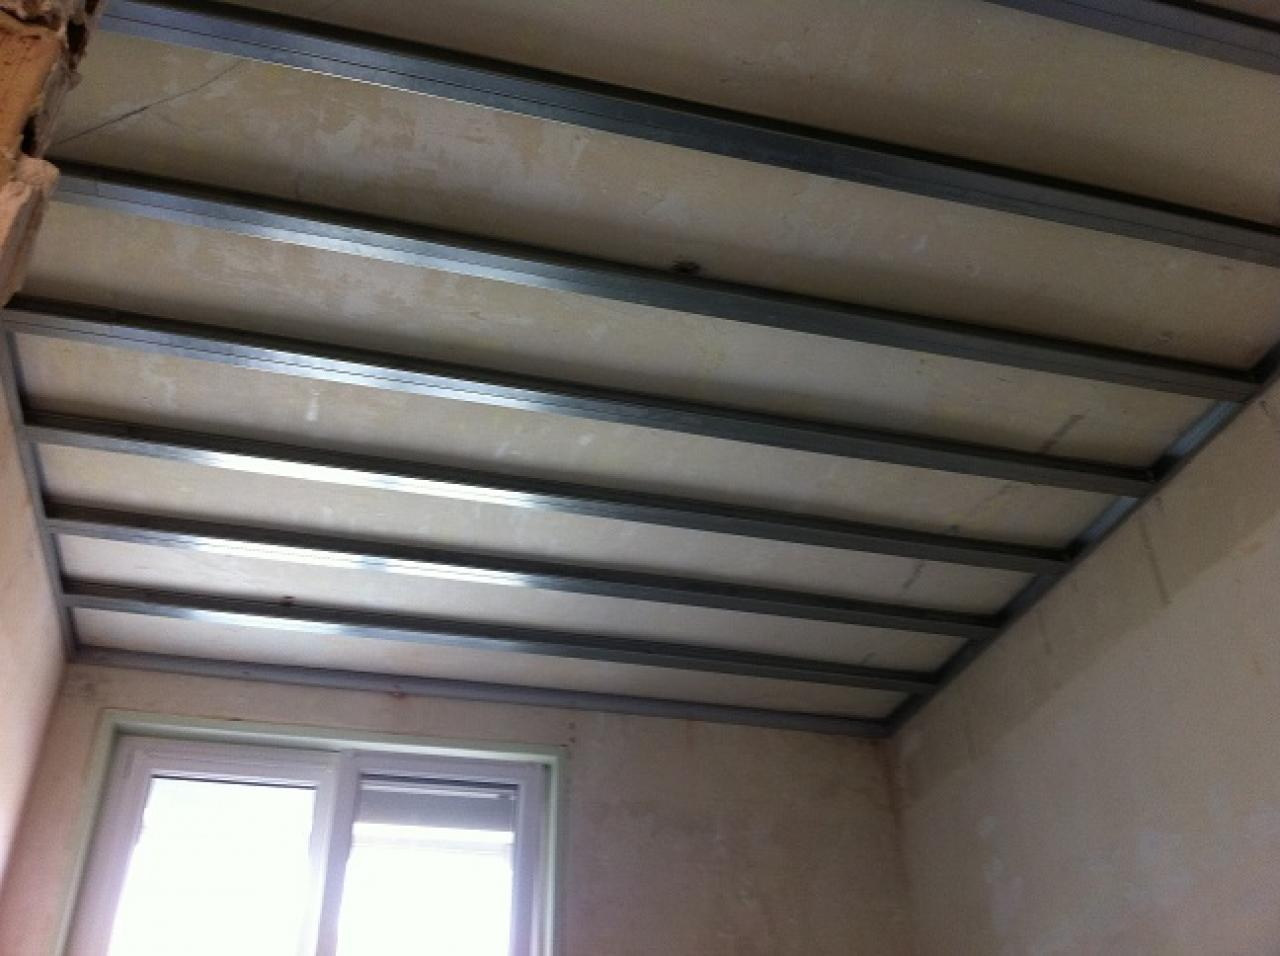 Comment faire un plafond en ba13 for Faire un plafond